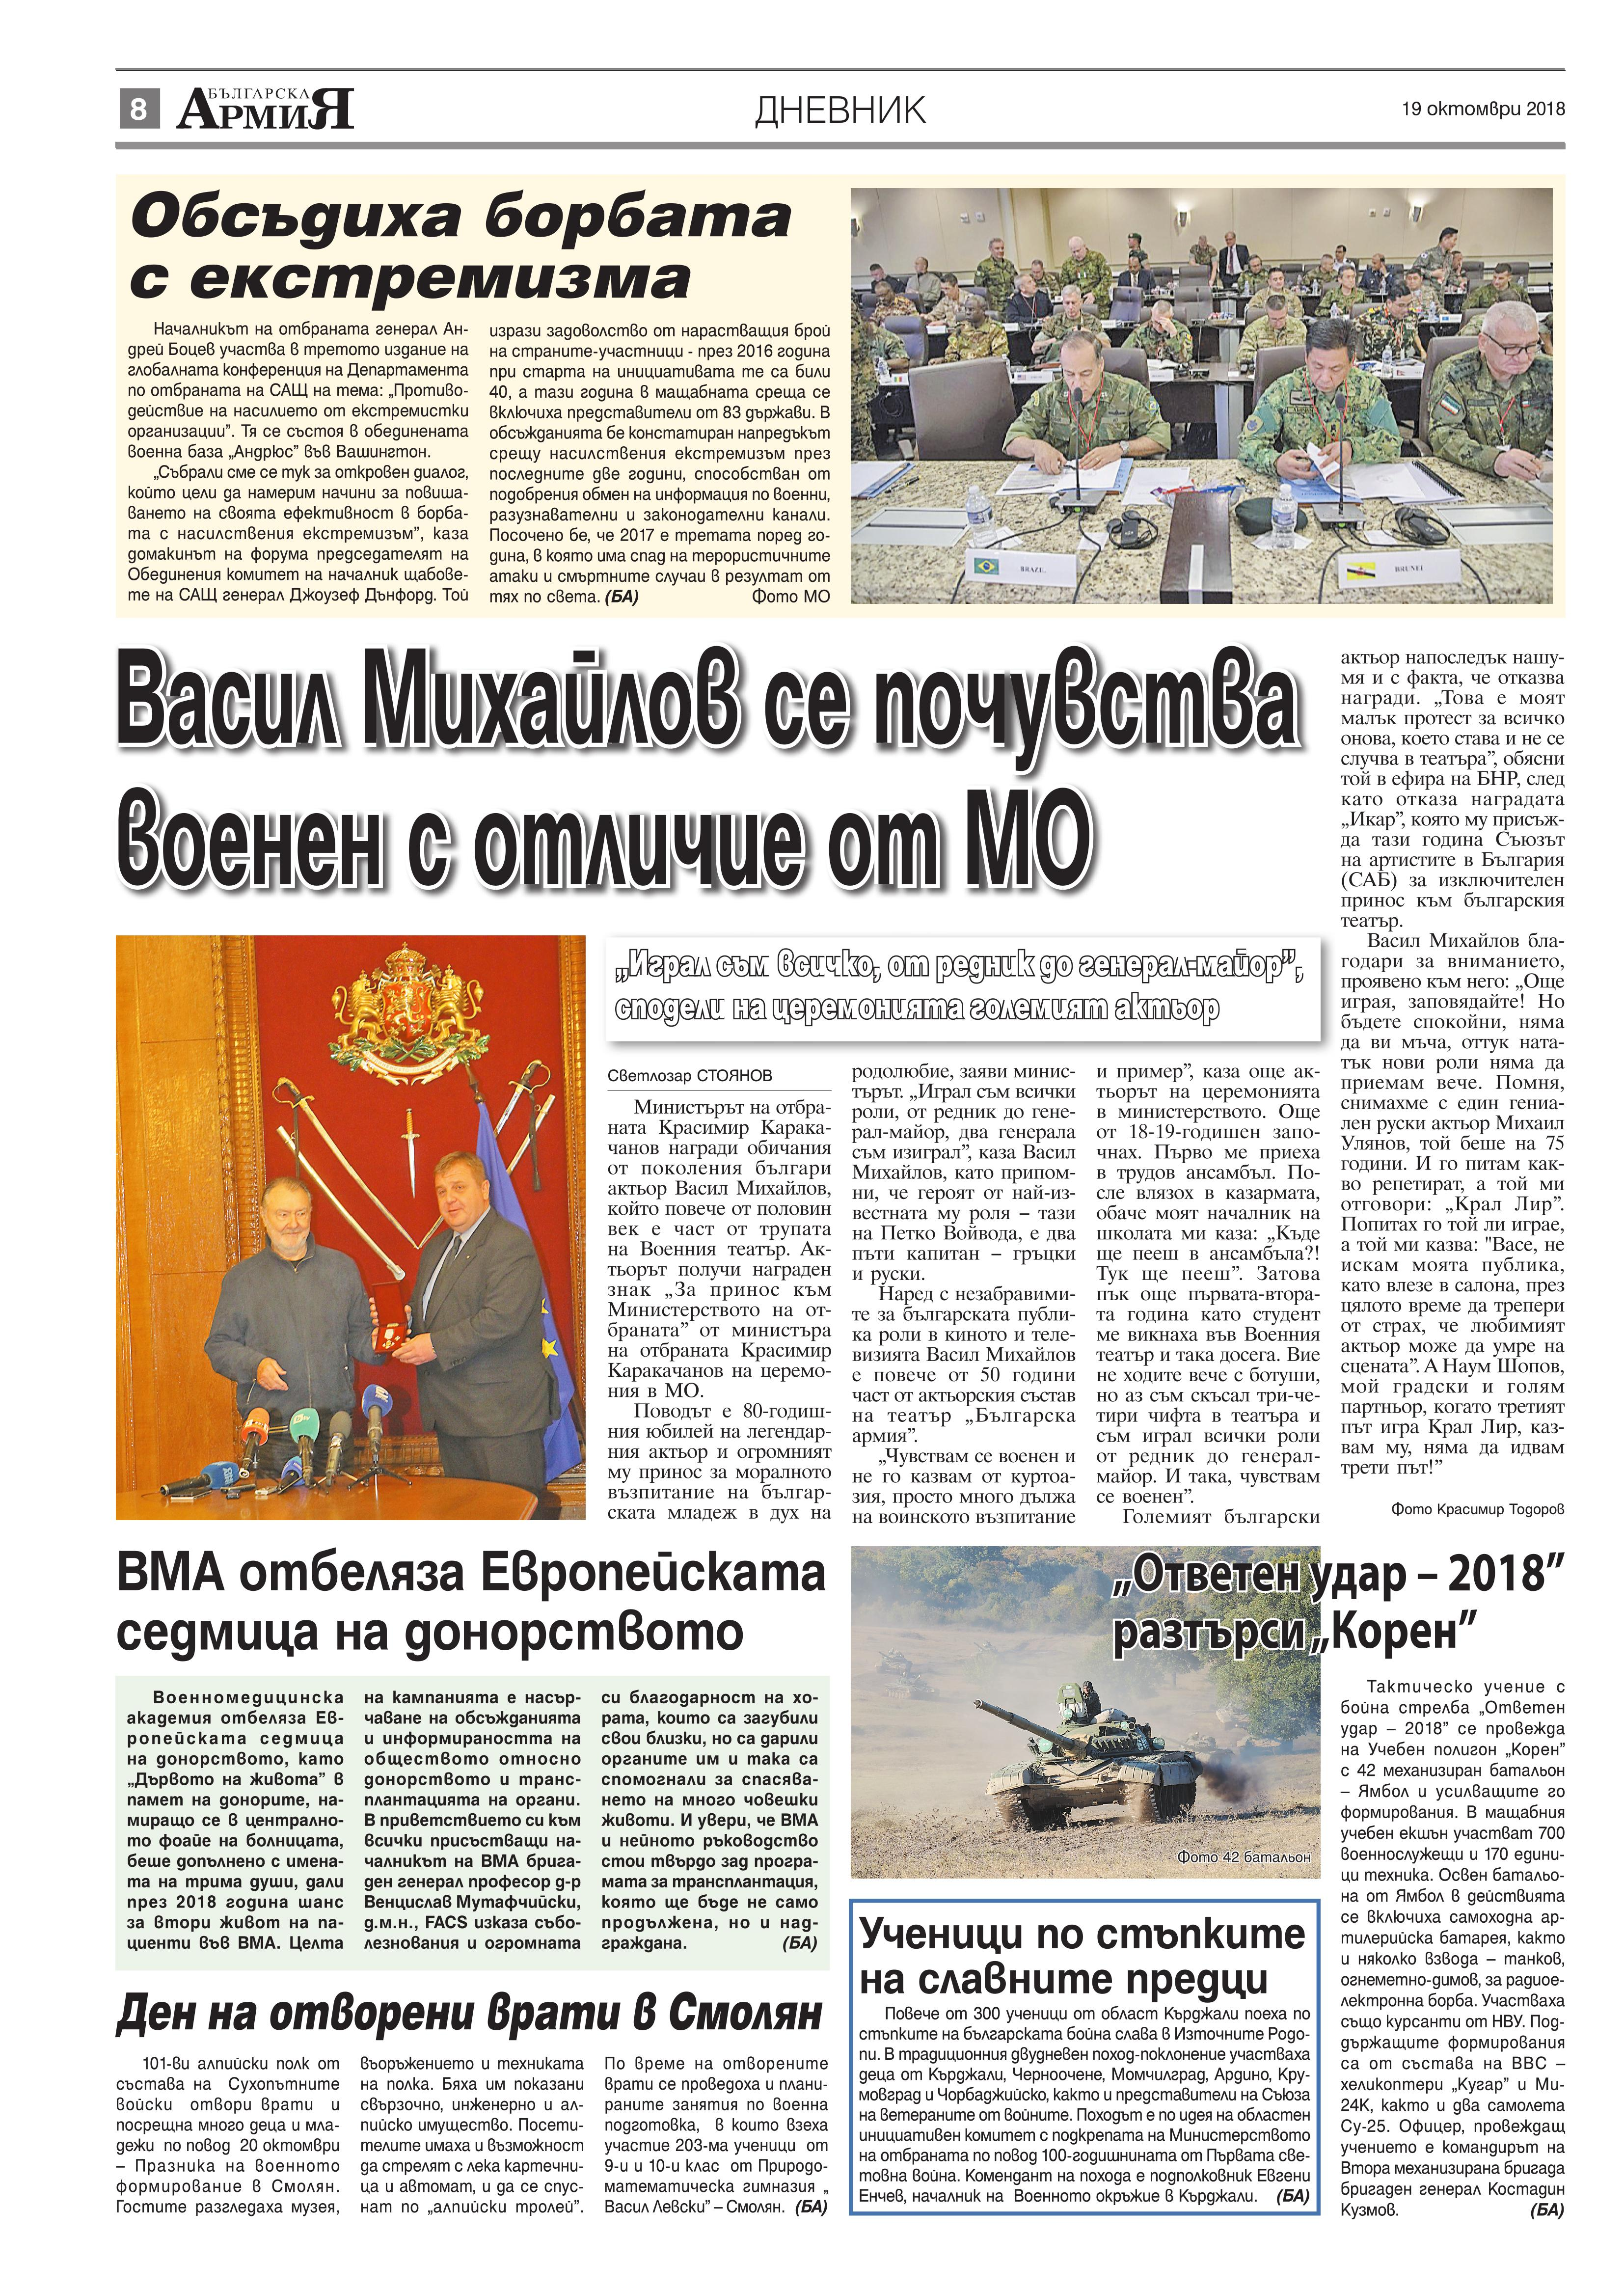 https://armymedia.bg/wp-content/uploads/2015/06/08.page1_-67.jpg